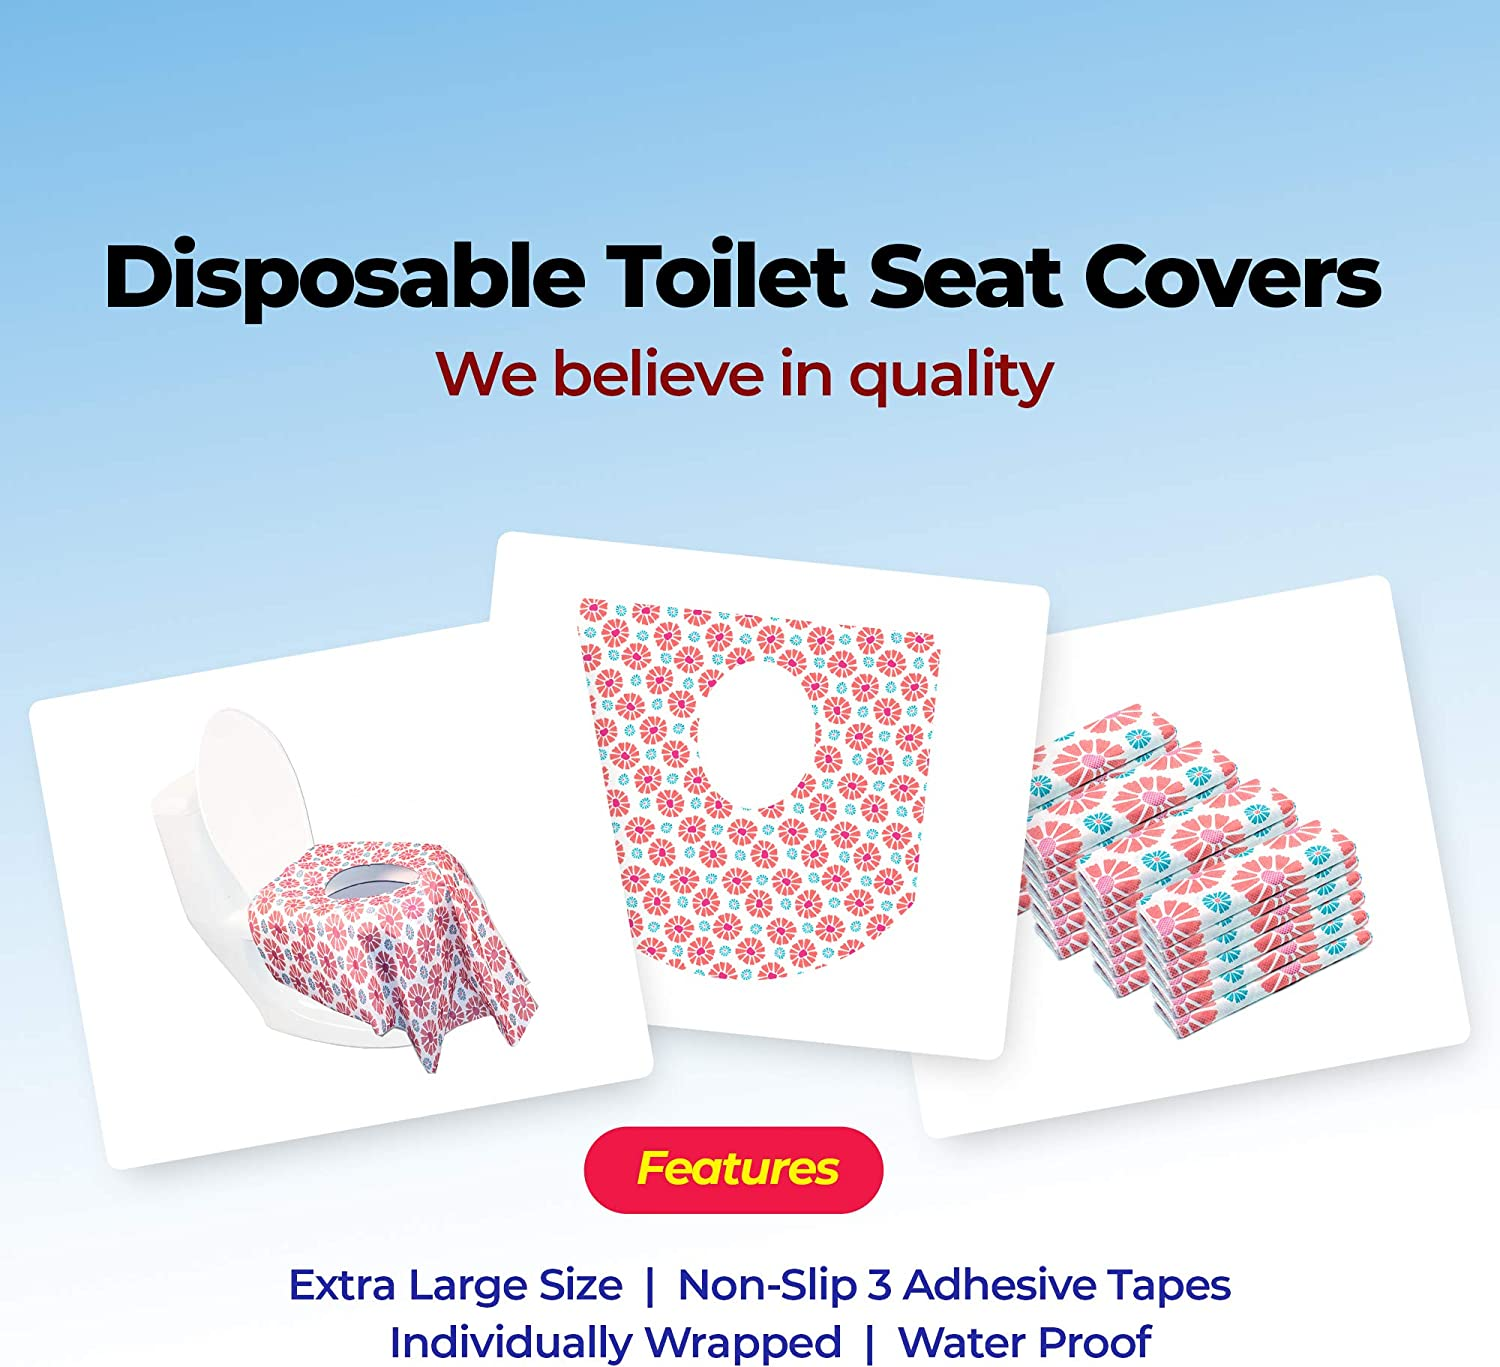 Airplane Essentials and Public Bathroom Disposable Toilet Seat Covers for Kids and Adults Portable Covers for Toddler Potty Training 24 Pack-Extra Large Pack of 24 Road Trip